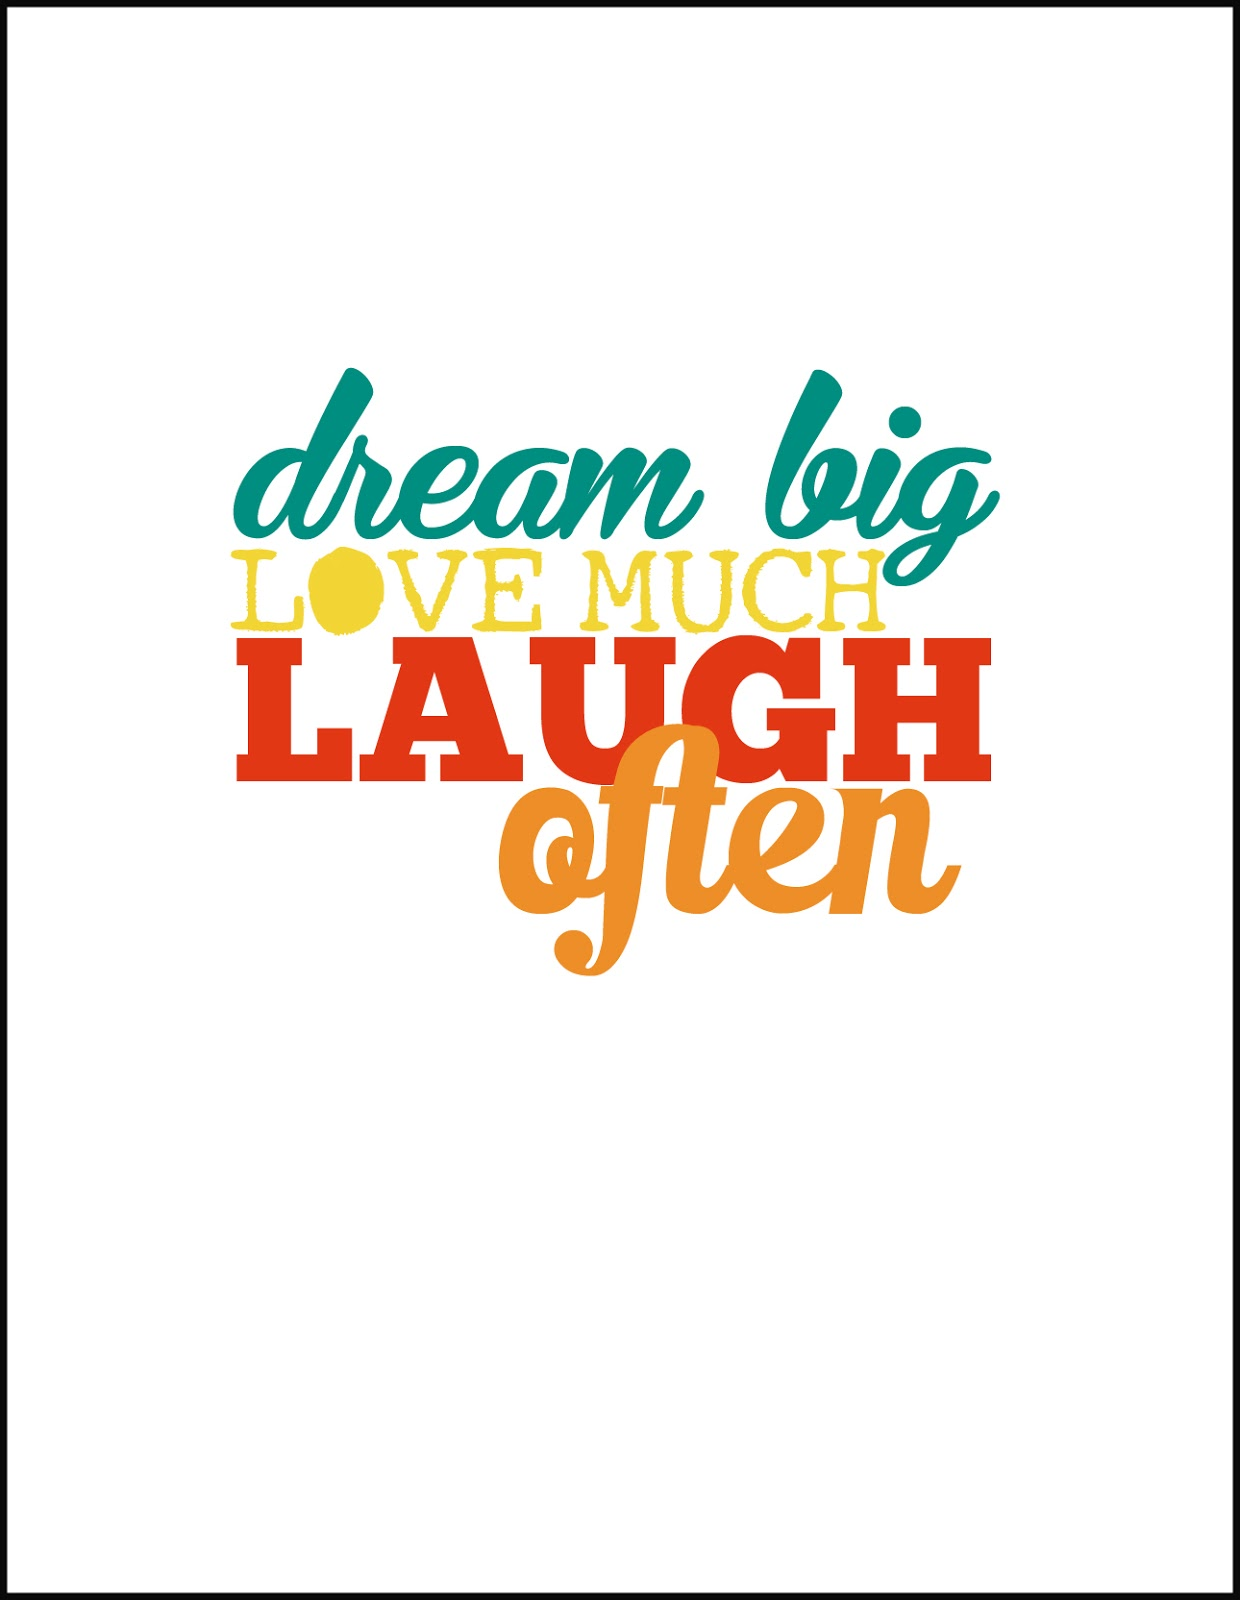 http://jen-gallacher.mybigcommerce.com/dream-big-printable/